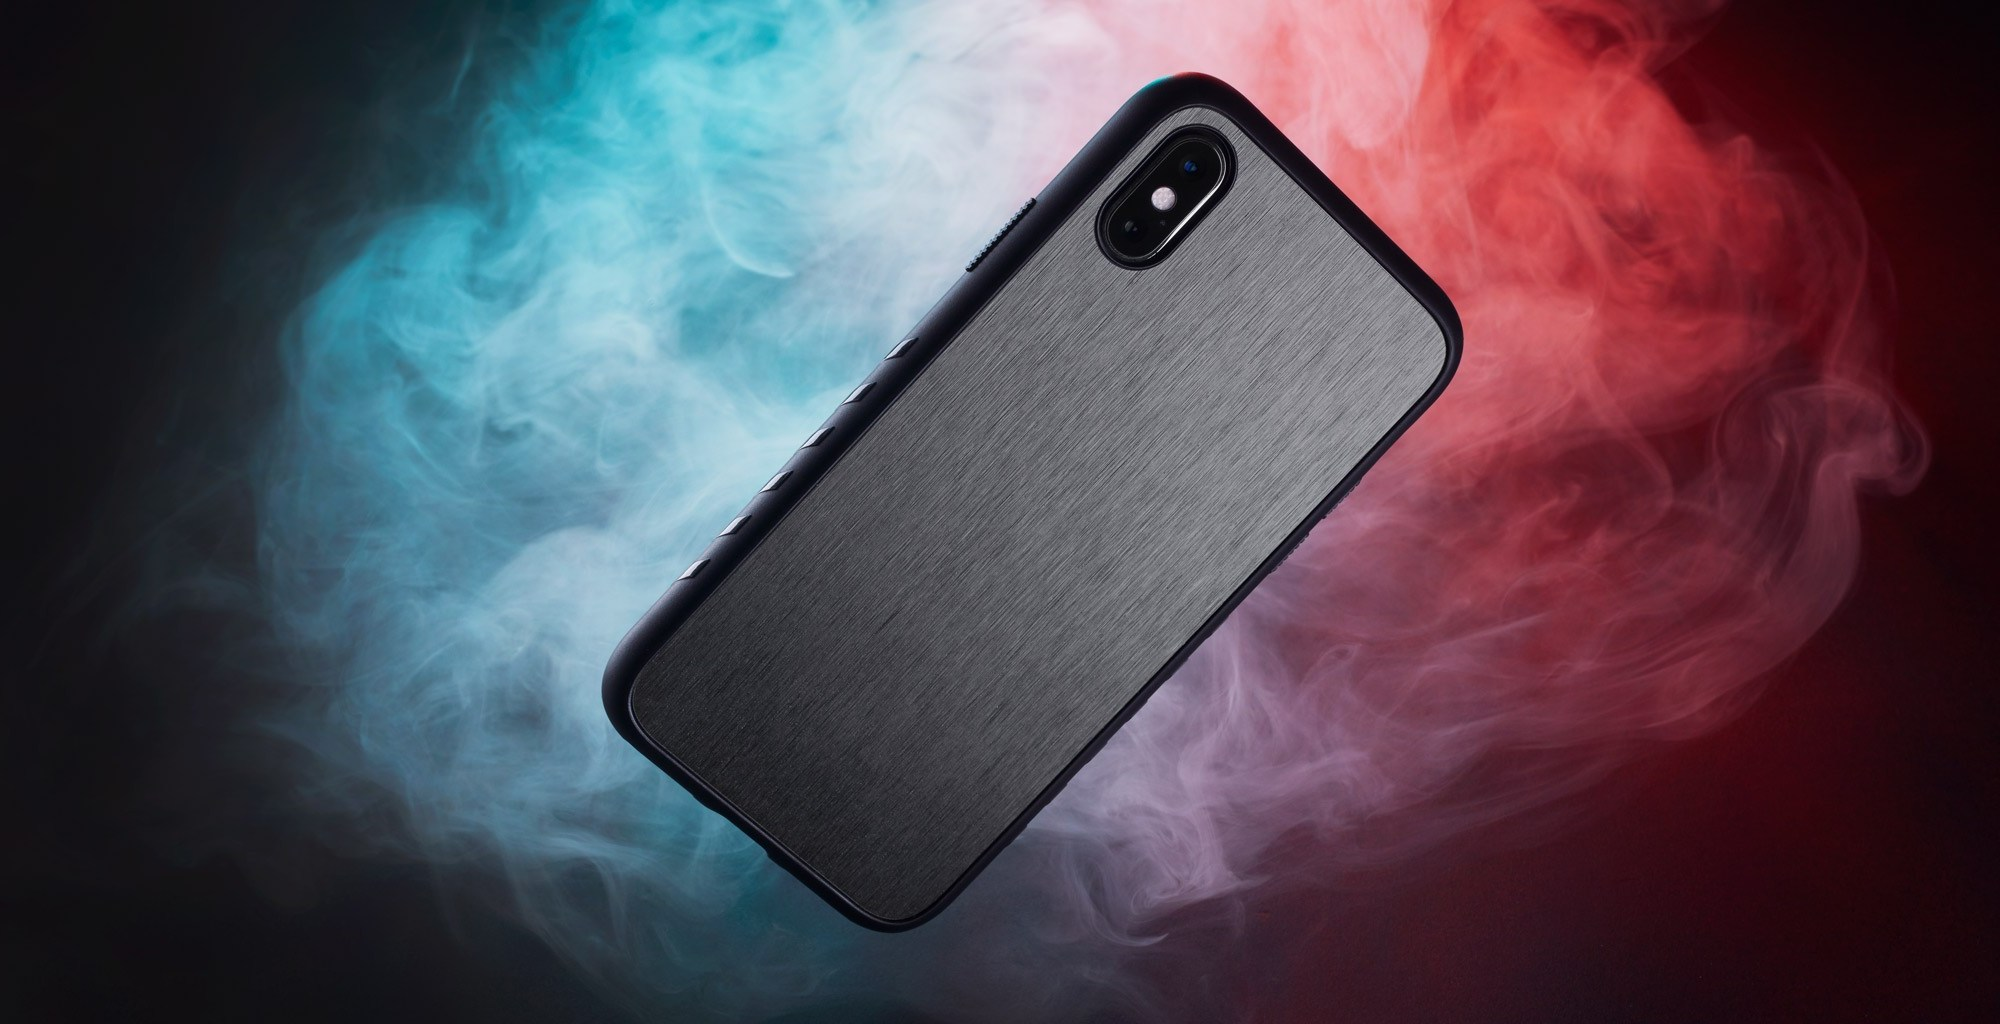 on sale efb5f 5d4fa dbrand Grip v2 phone case review - Pixel Spot